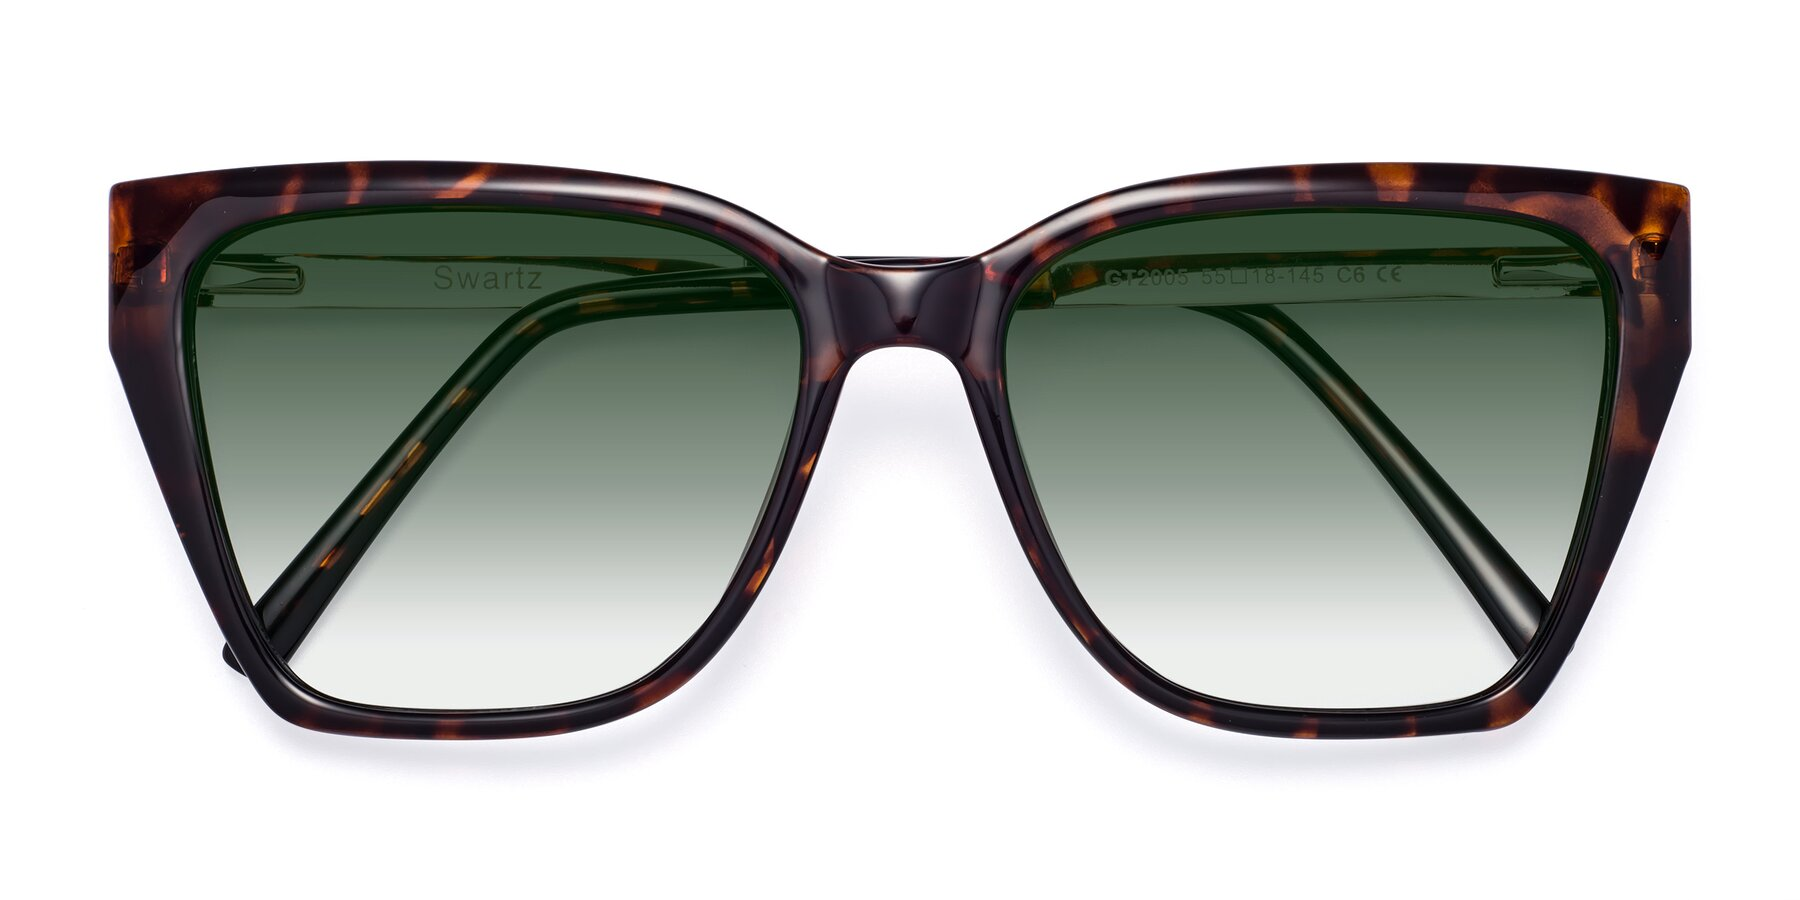 Folded Front of Swartz in Tortoise with Green Gradient Lenses